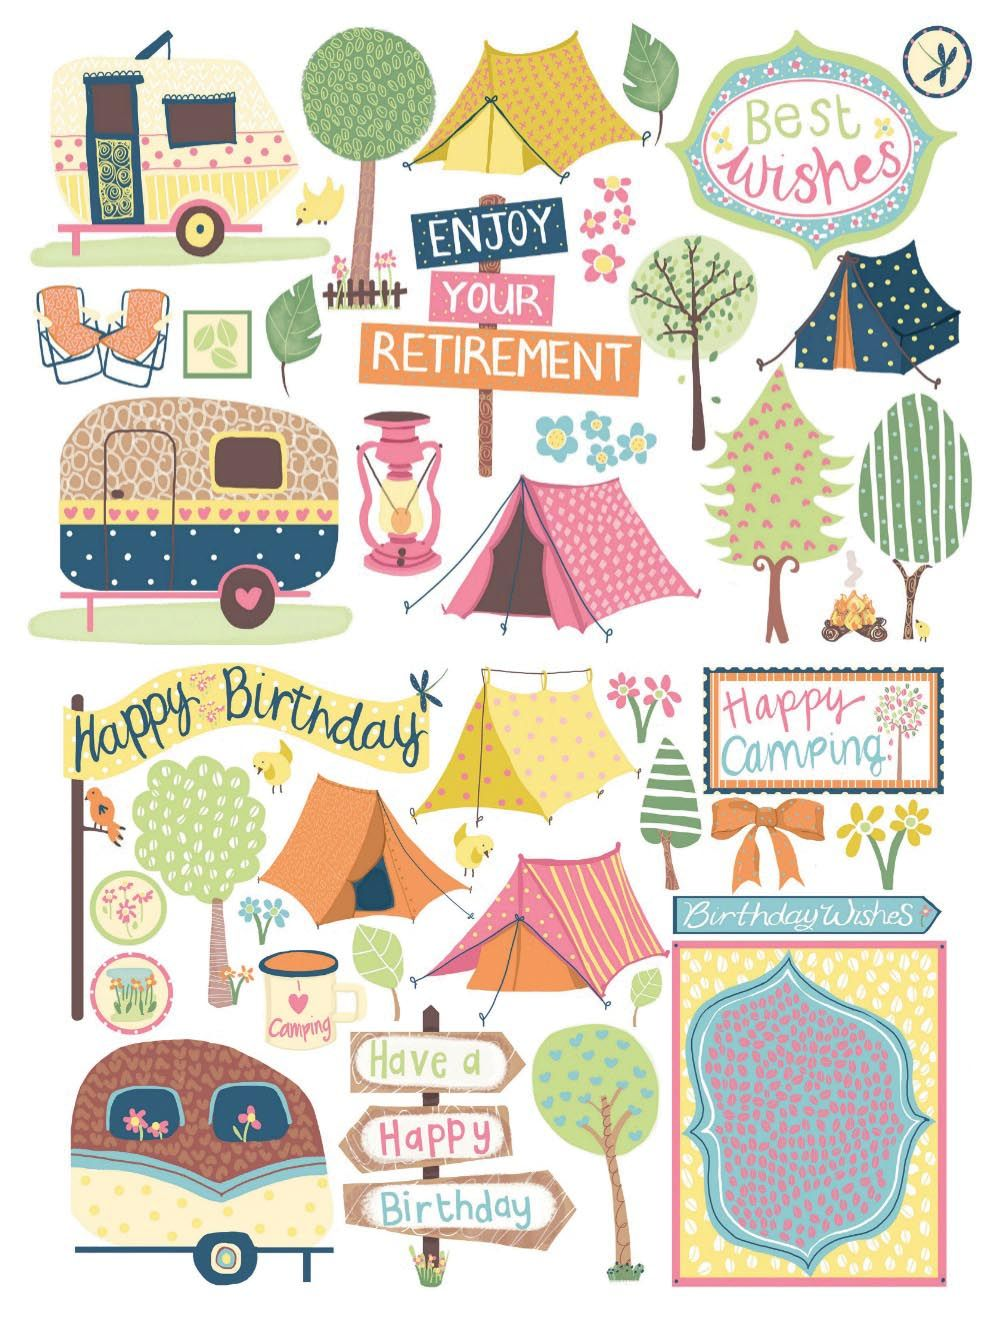 fac1c1bd4e6 These beautiful camping illustrations are ideal for card making and  scrapbooking - download them for free!